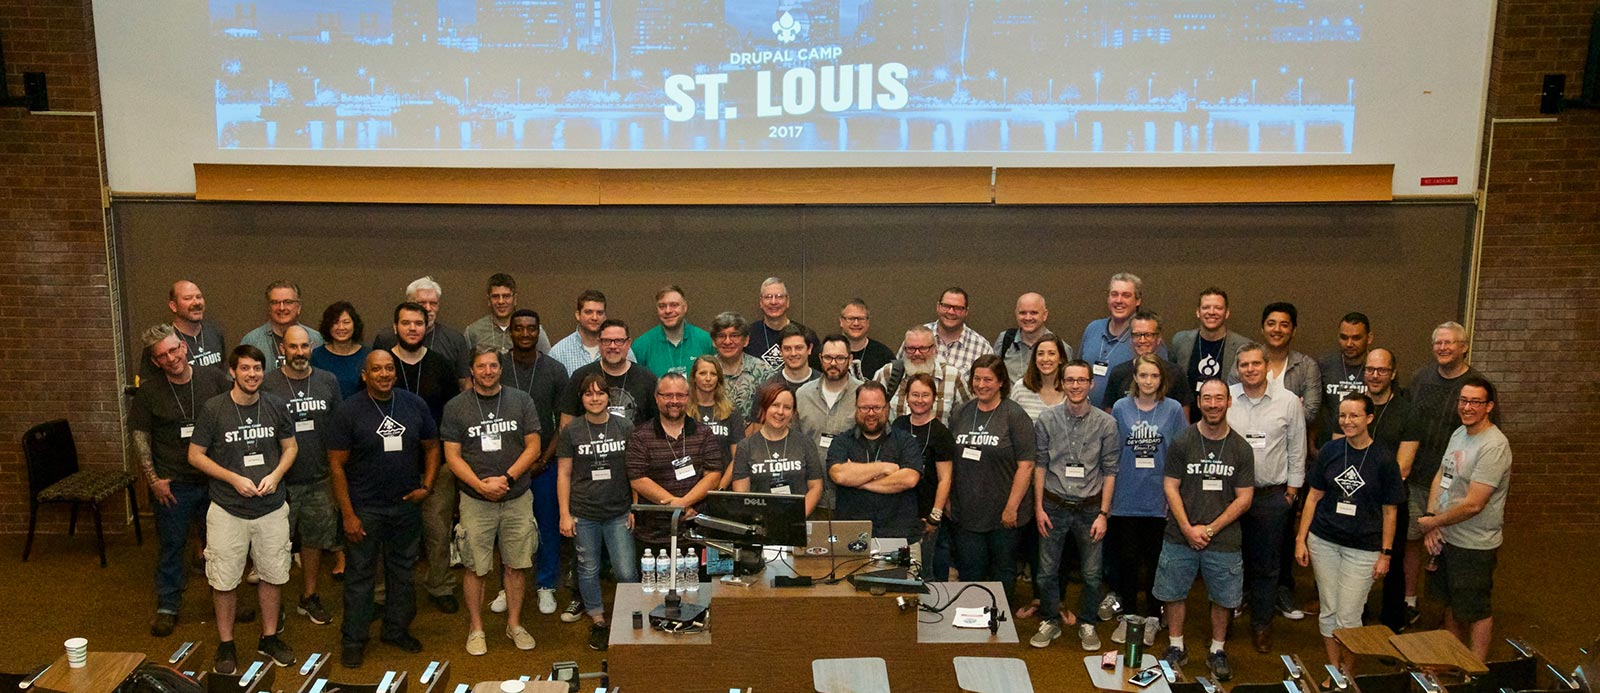 2017 Drupal Camp St. Louis Participants